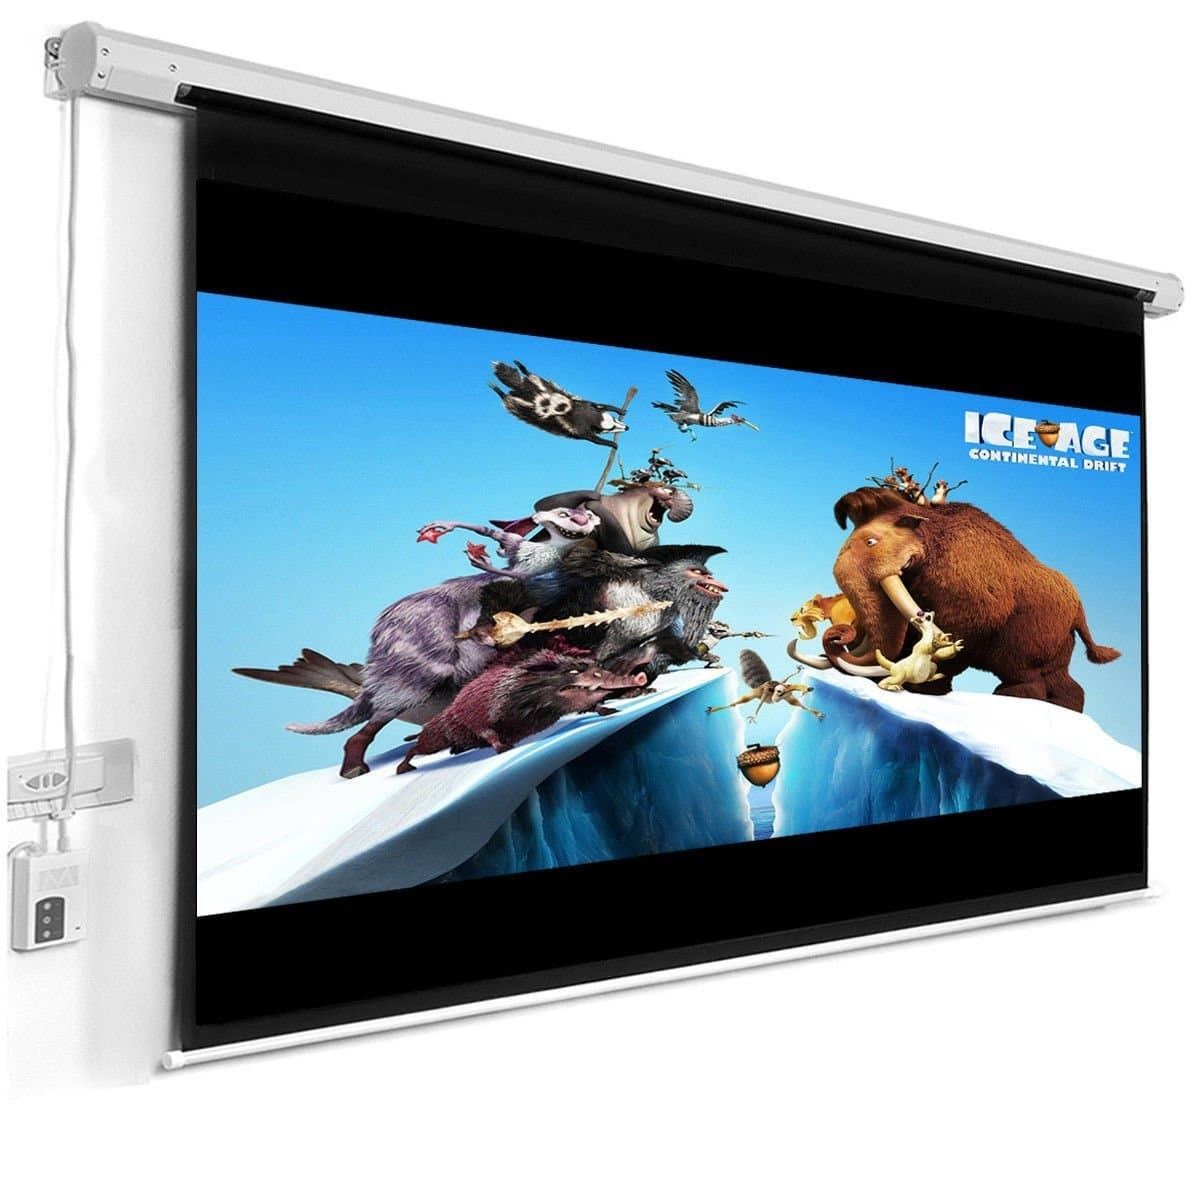 Top 10 Best Motorized Projector Screens In 2020 Complete Review With Images Projection Screen Projector Best Home Theater System